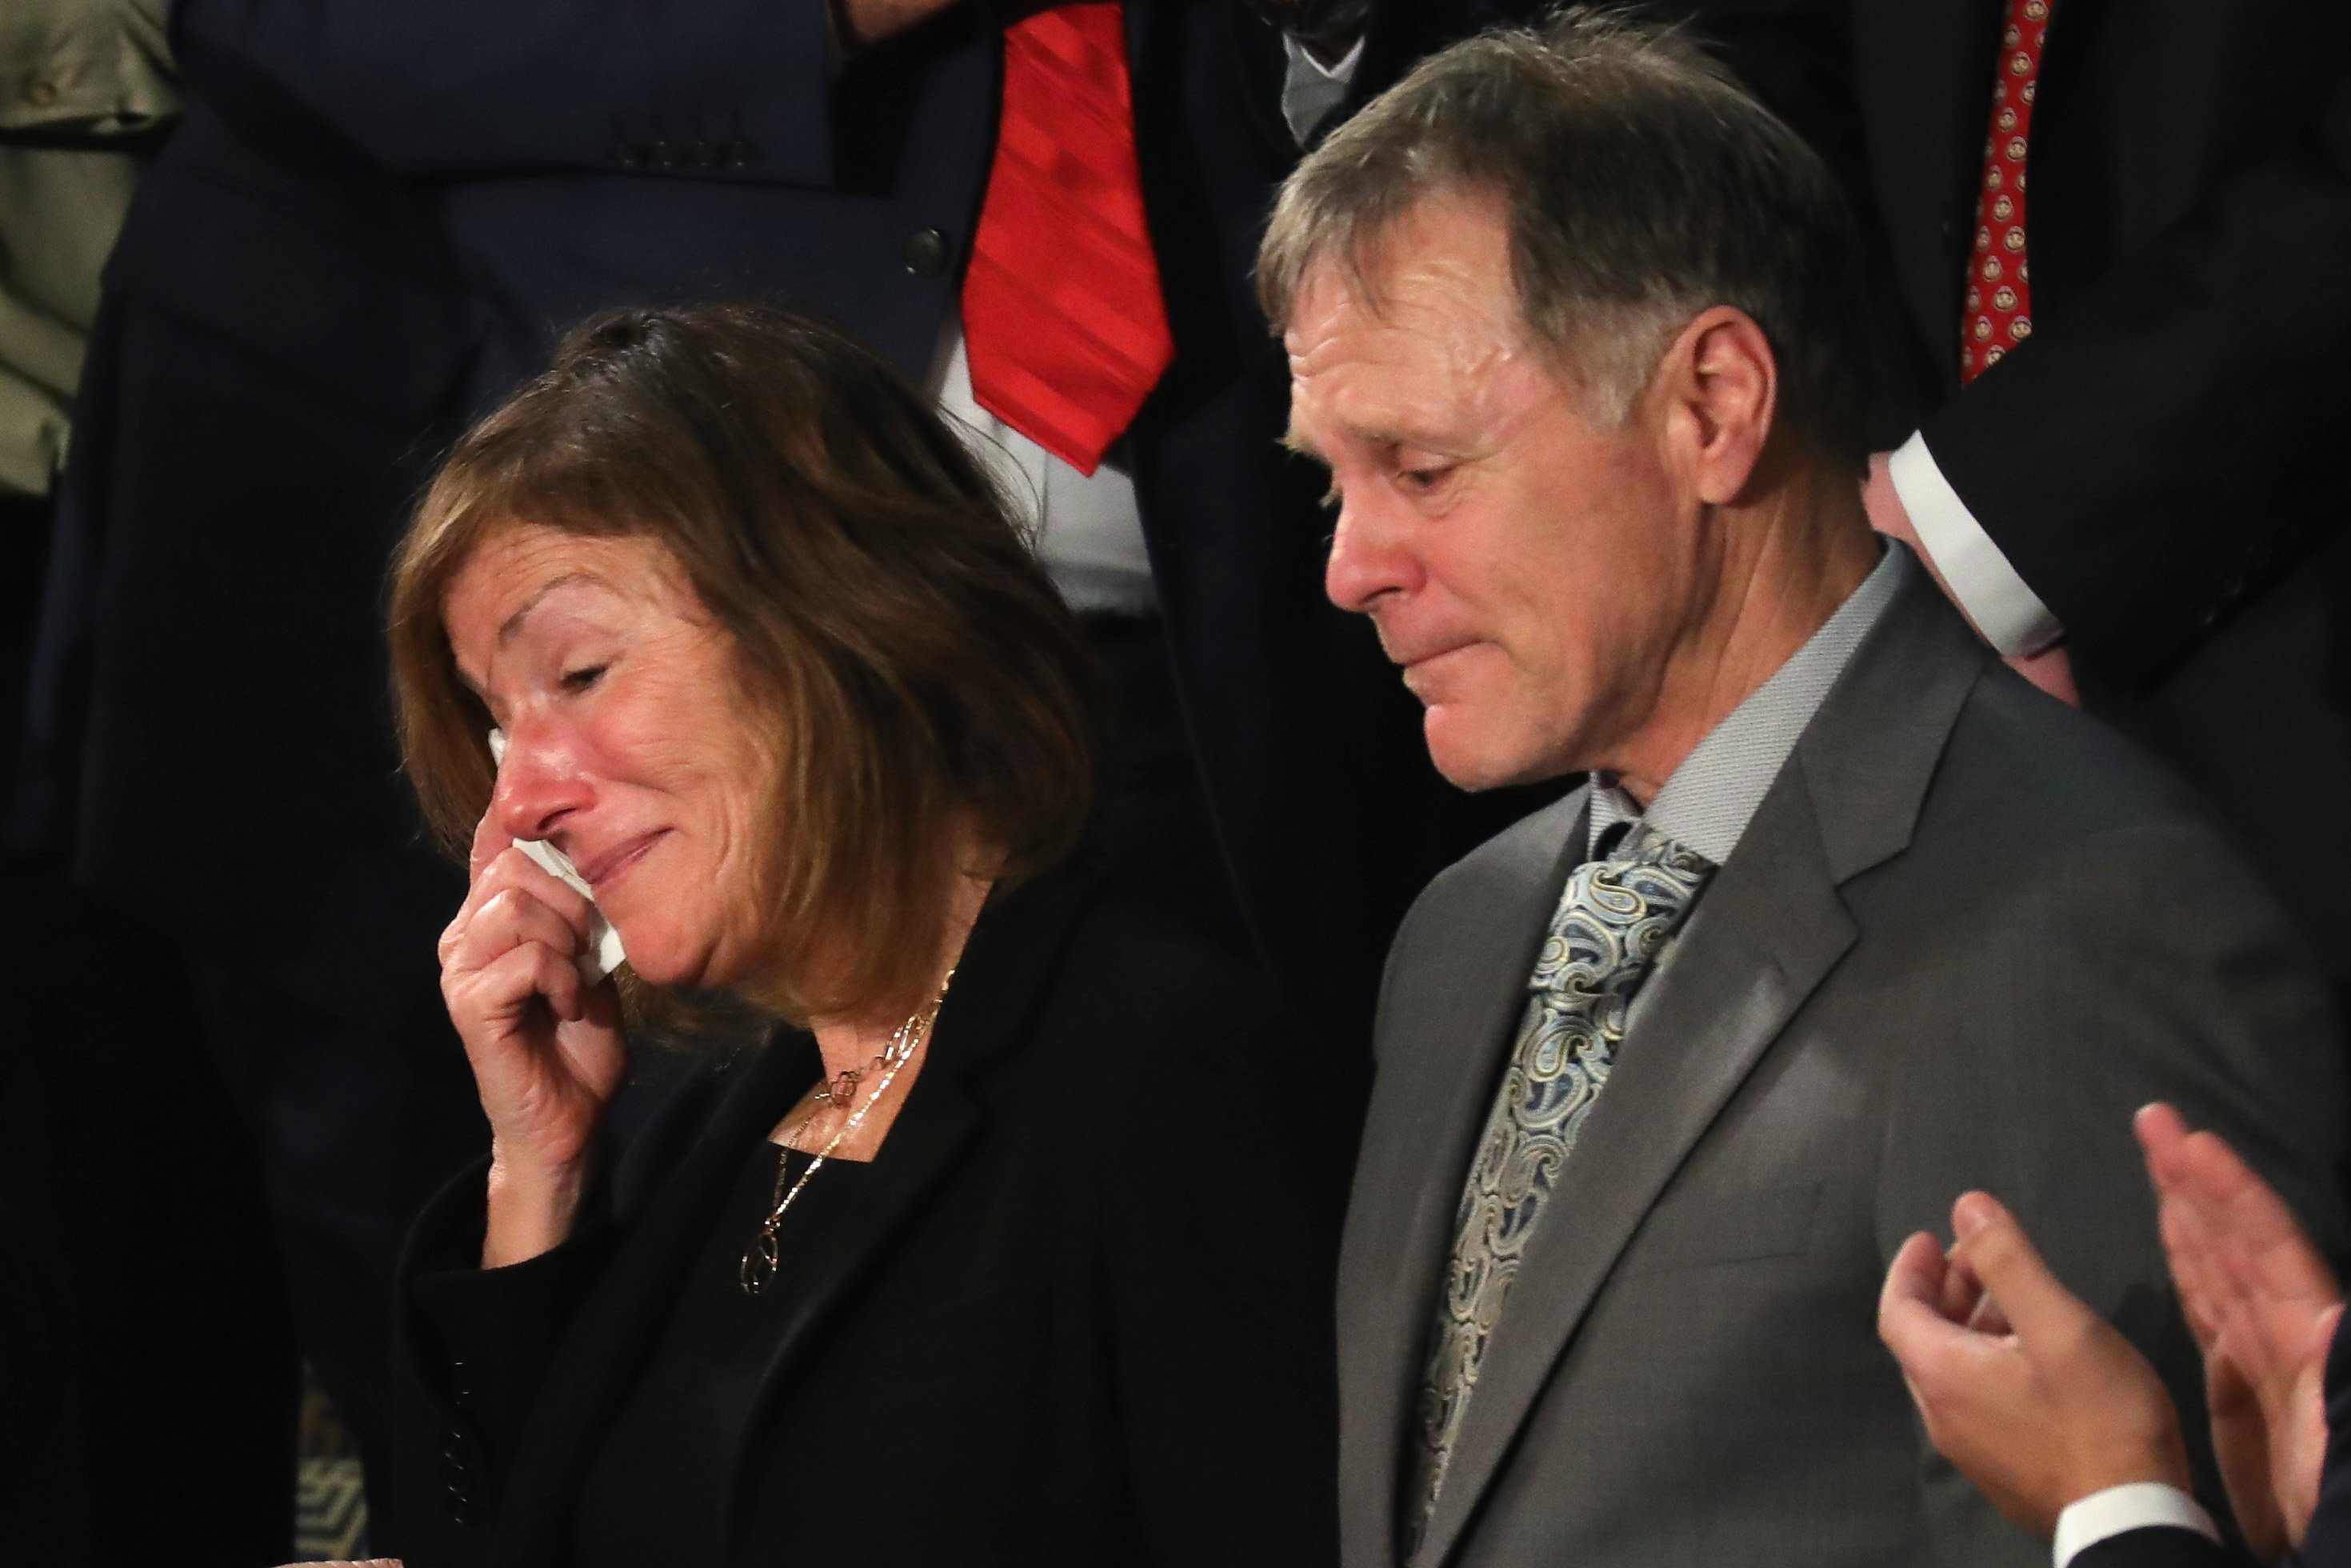 Parents of Otto Warmbier, Fred and Cindy Warmbier | Source: Getty Images